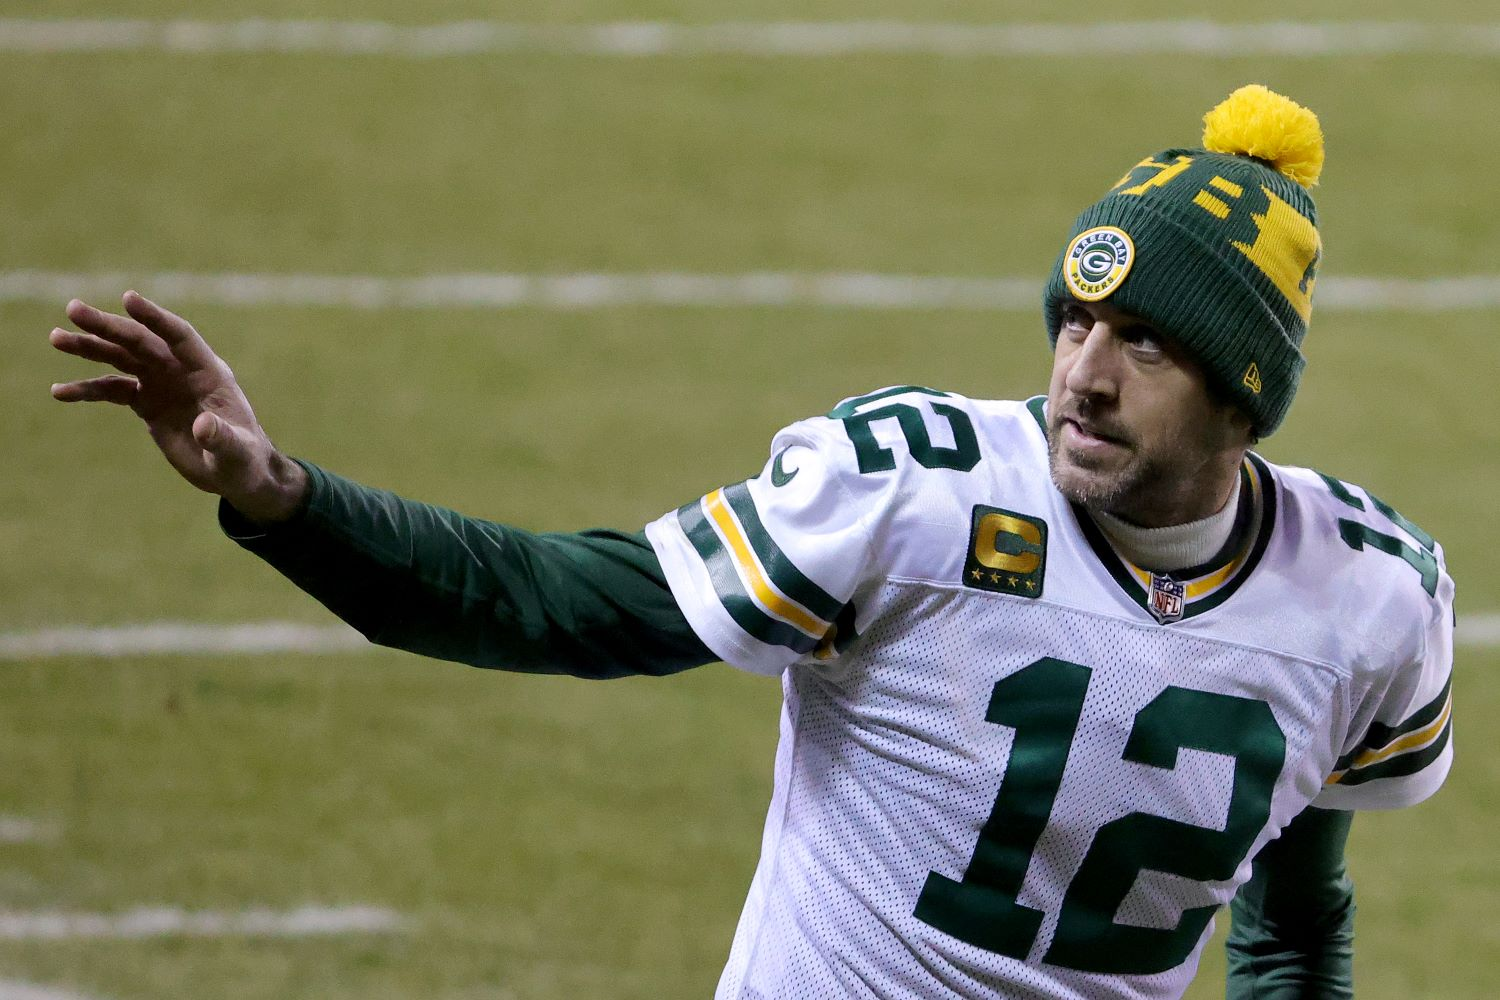 Aaron Rodgers entered the 2020 season with a point to prove. It turns out the Packers QB had a silent weapon that helped him bounce back.